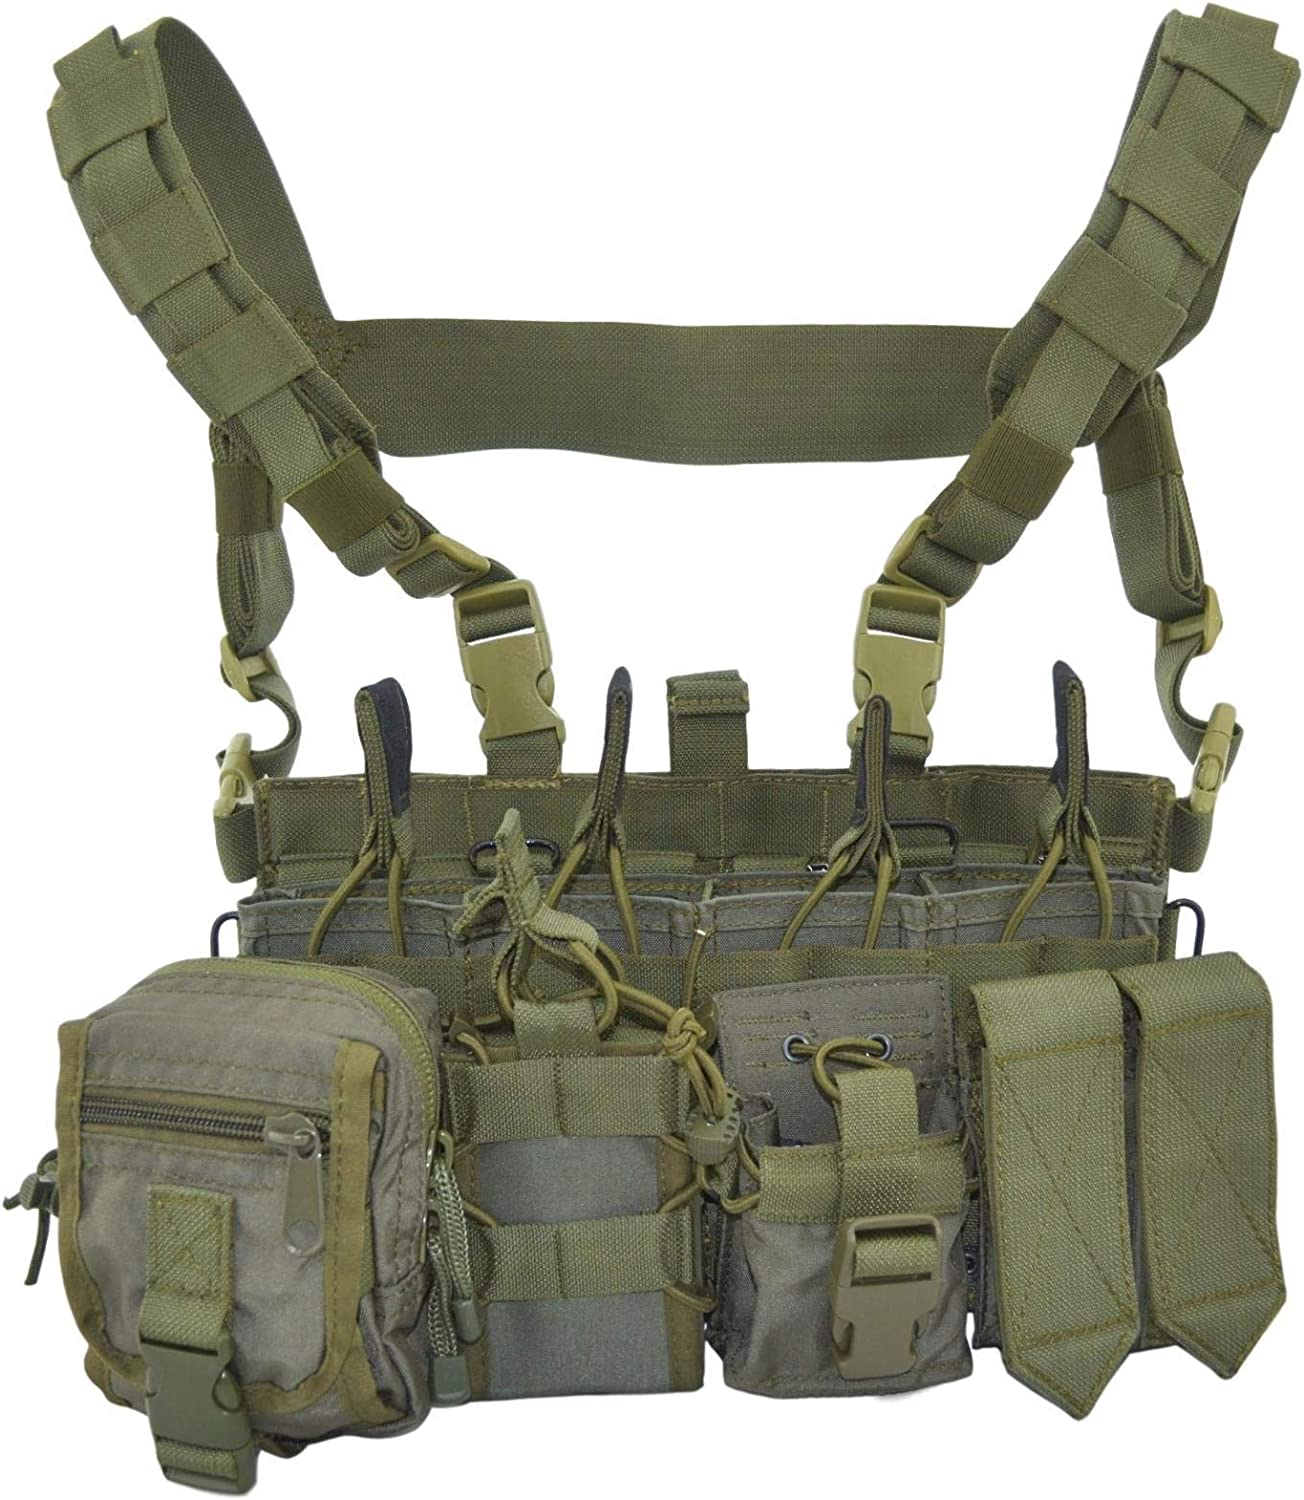 This is an image of the SPOSN Tactical Molle Chest Rig in olive color, with shoulder straps with snap-buckle connected to it, multiple molle pouches.